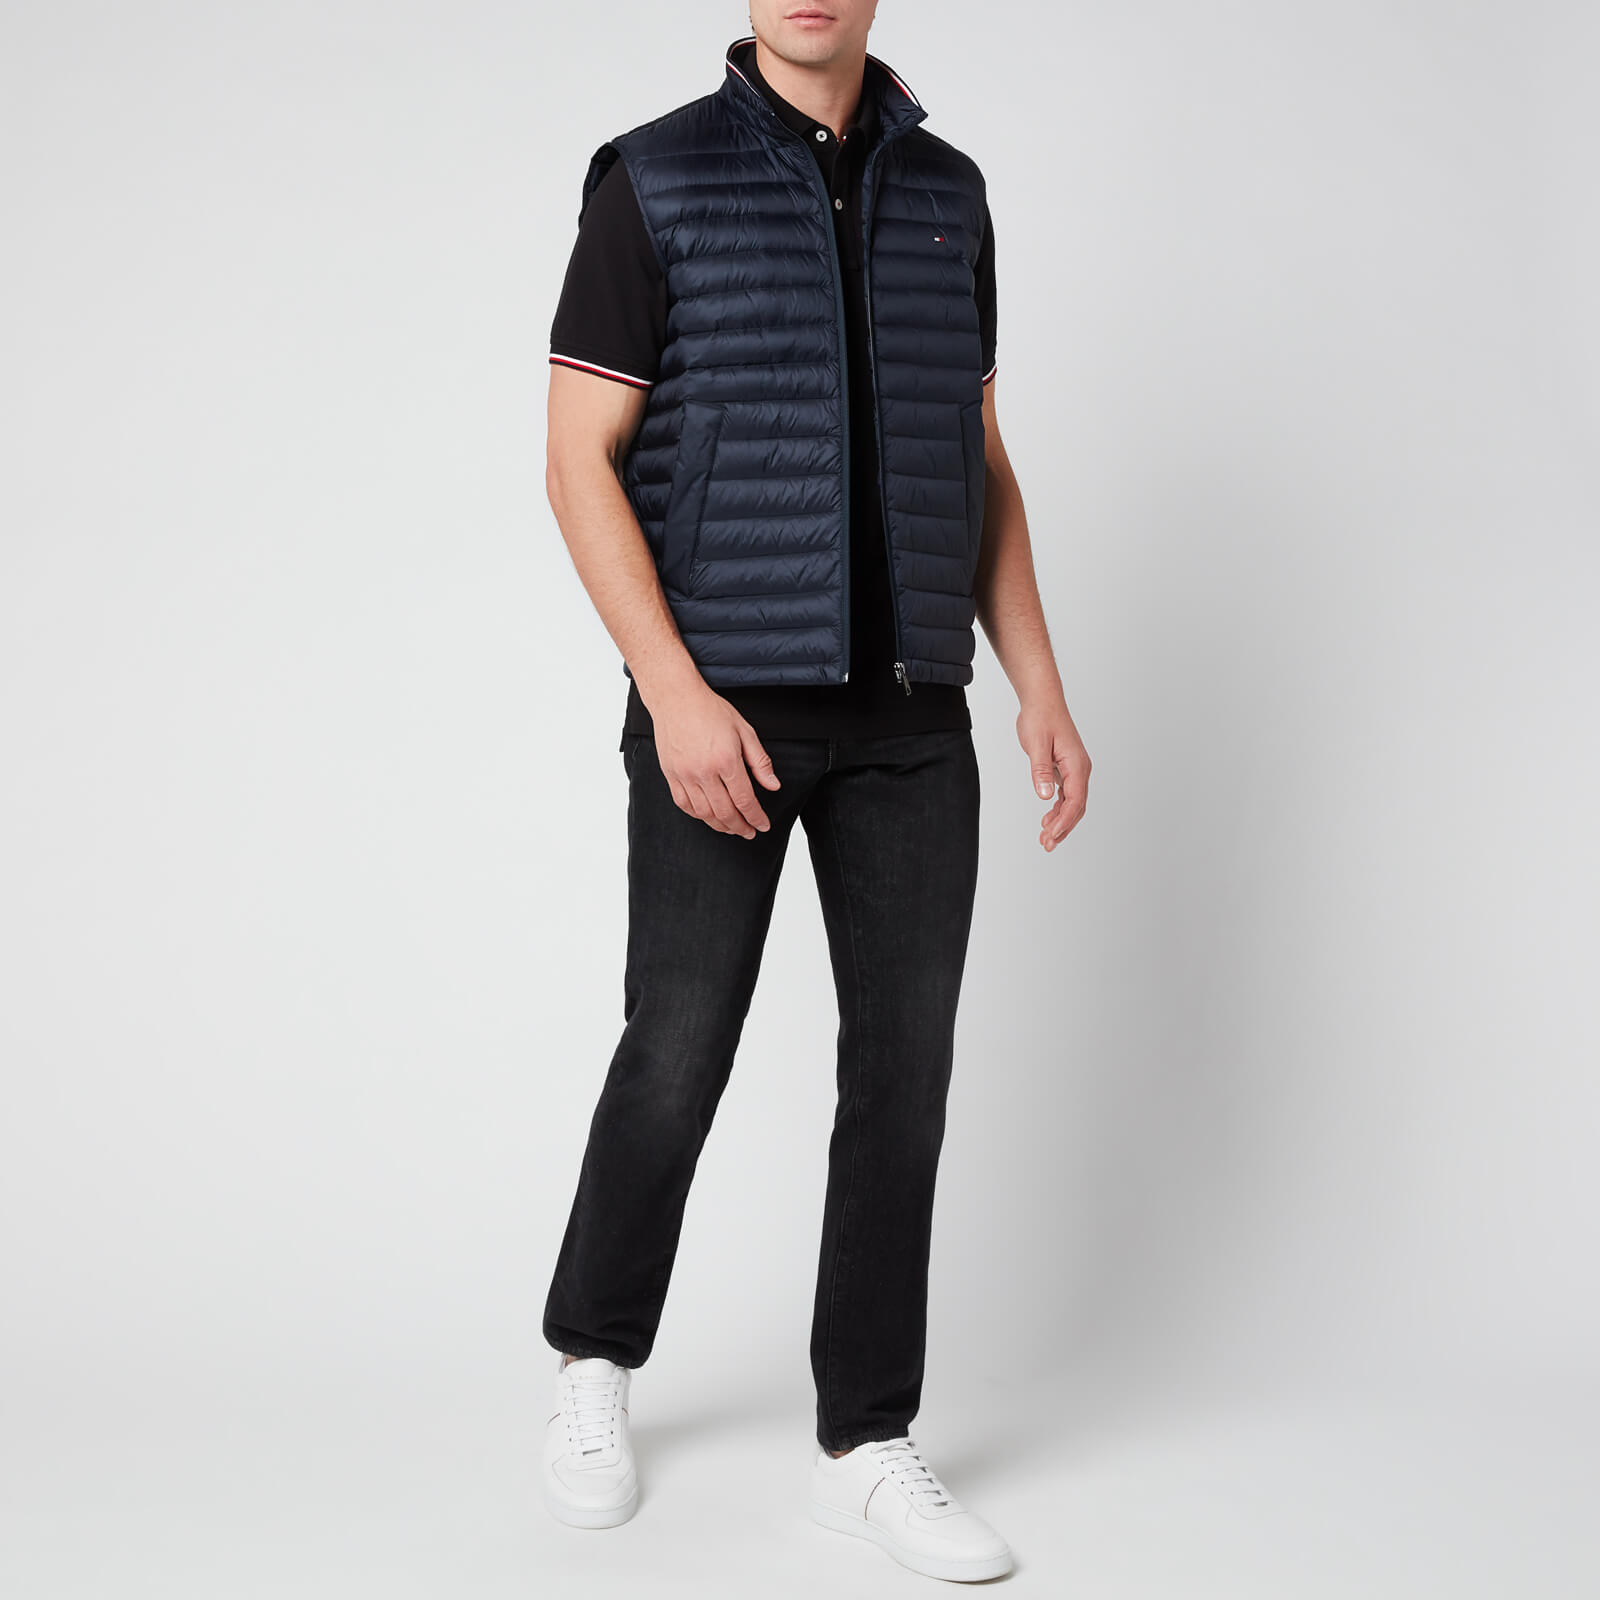 Tommy Hilfiger Men's Core Tommy Tipped Polo Shirt - Black - S